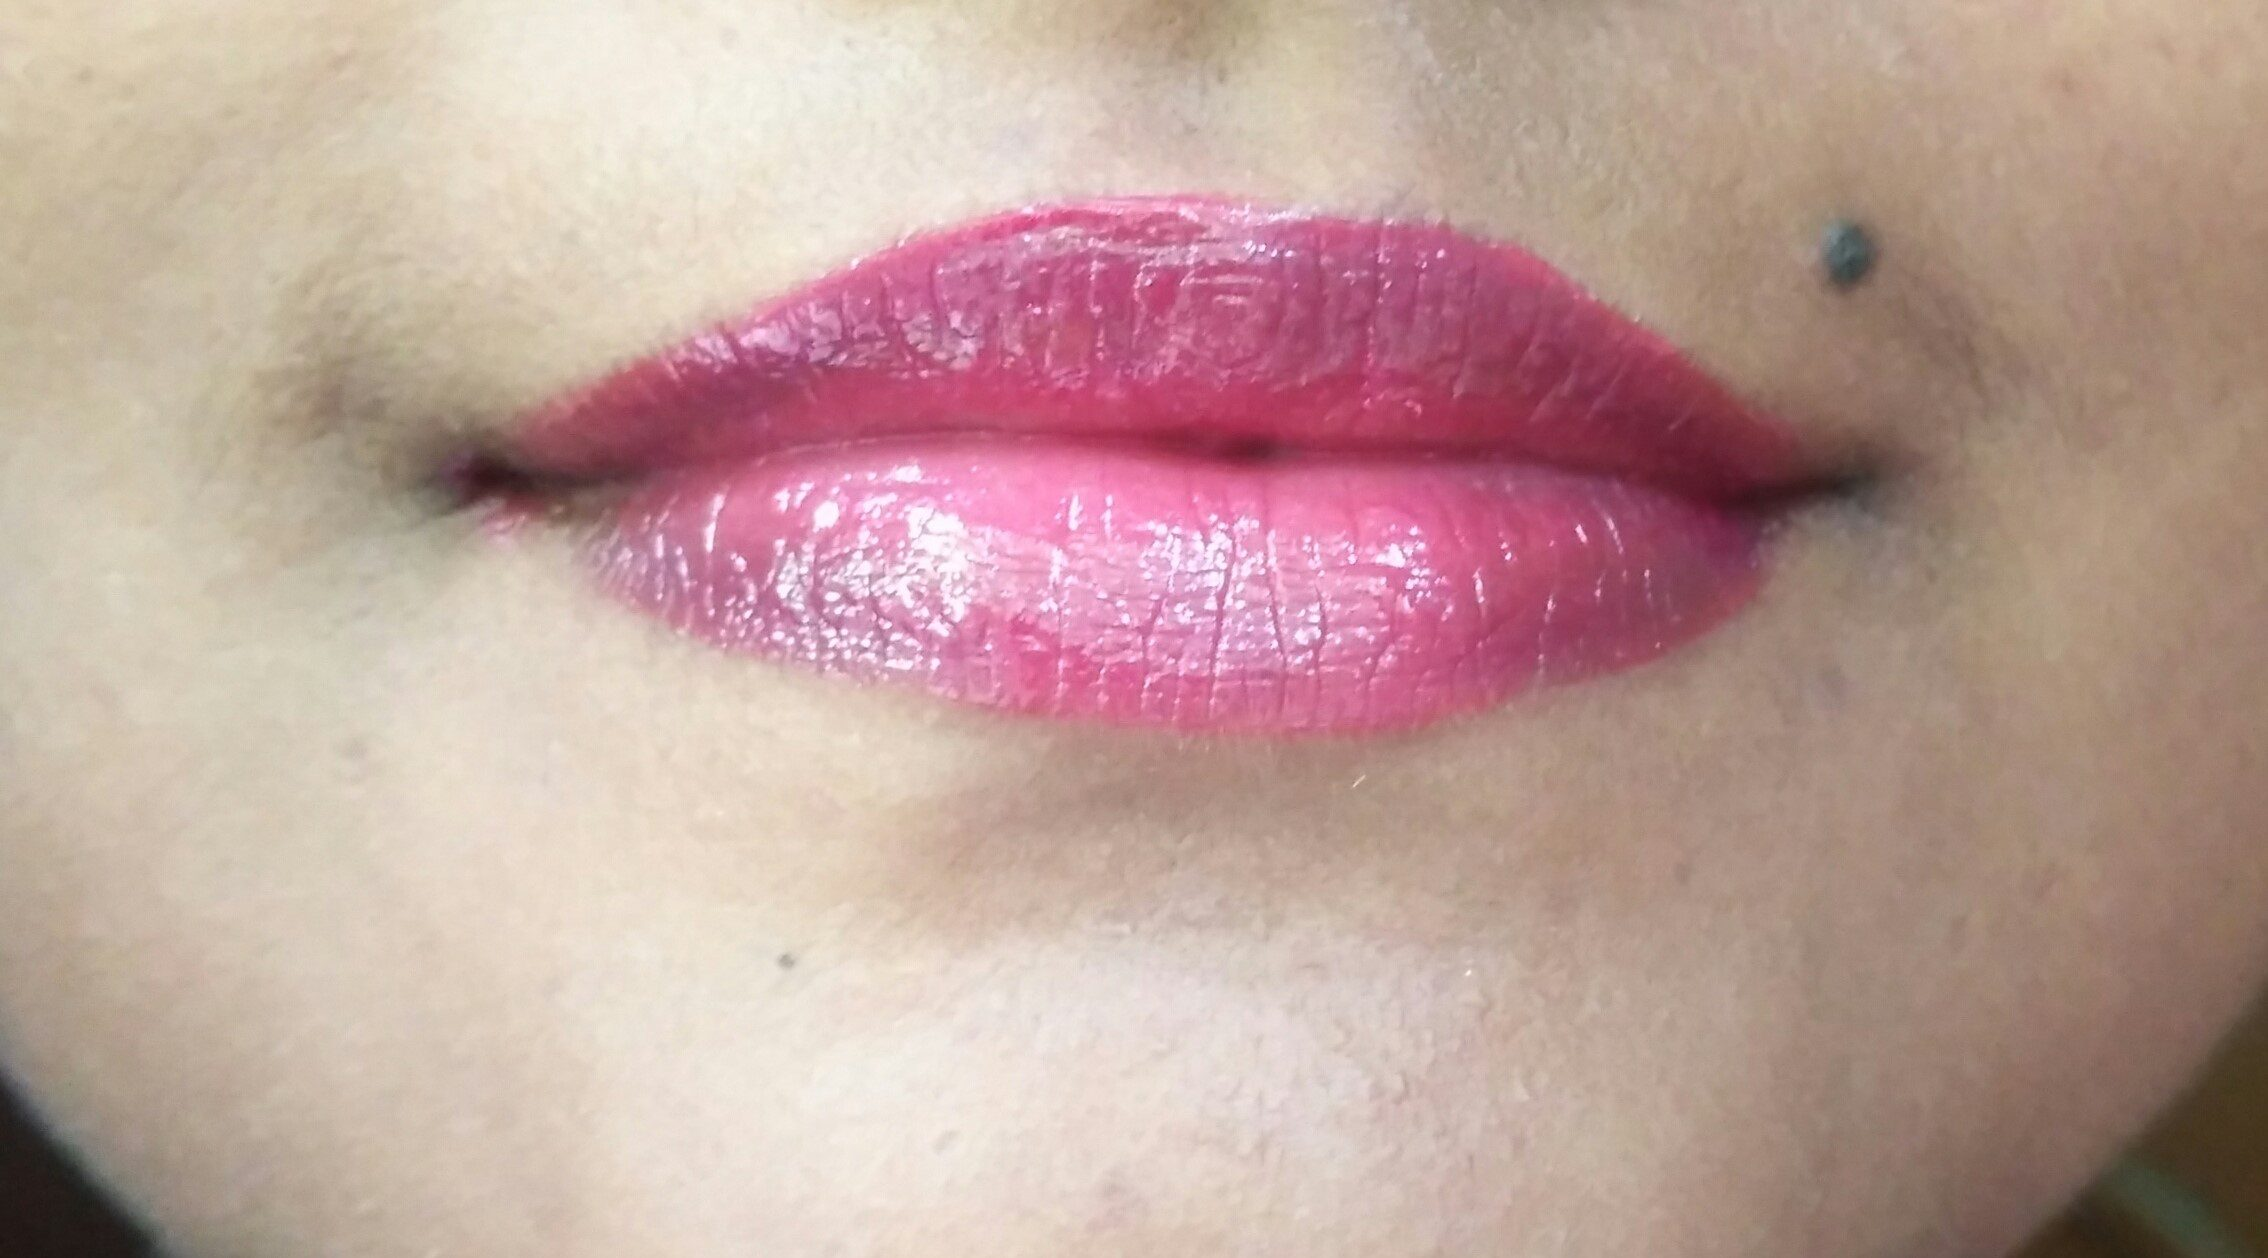 L.A. Colors Pout Super Shine Lip Gloss French Kiss Review